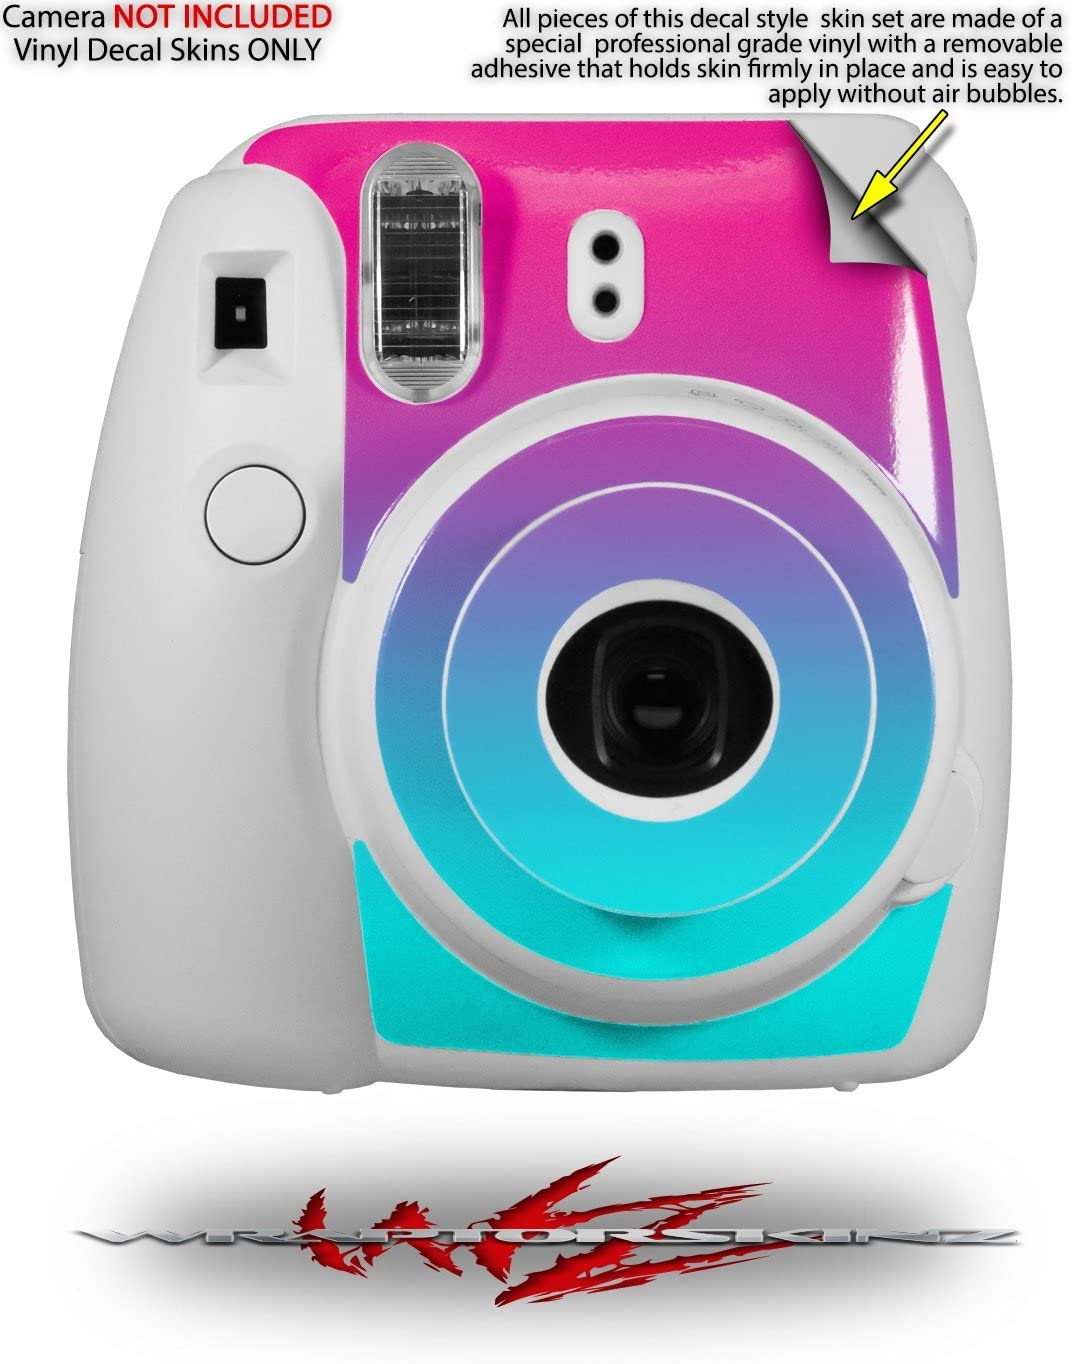 WraptorSkinz Skin Decal Wrap for Fujifilm Instax Mini 8 Camera Camouflage Pink CAMERA NOT INCLUDED